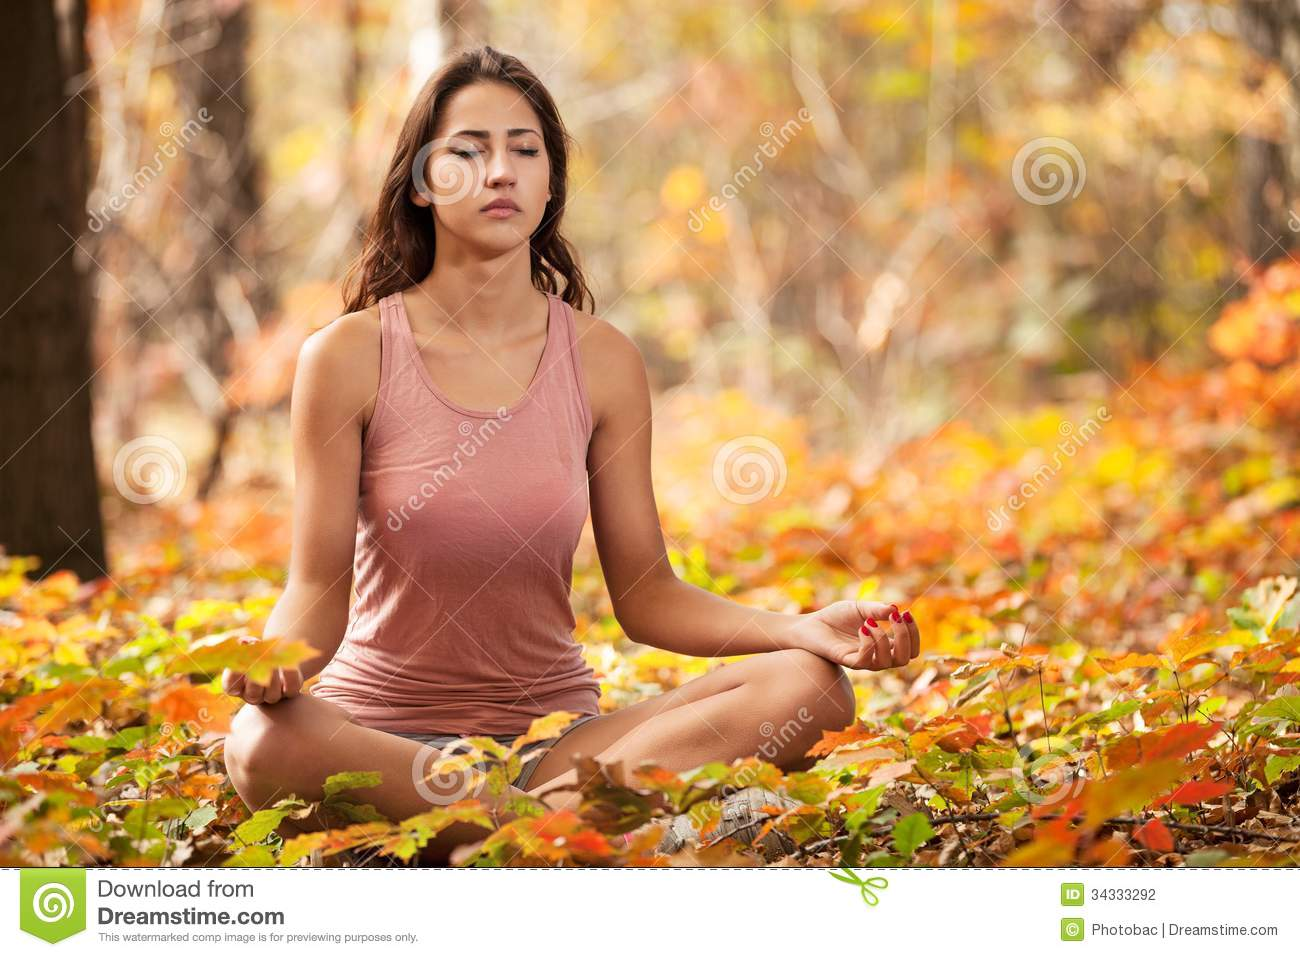 Young Girl Meditating In Autumn Park Stock Photography - Image ...